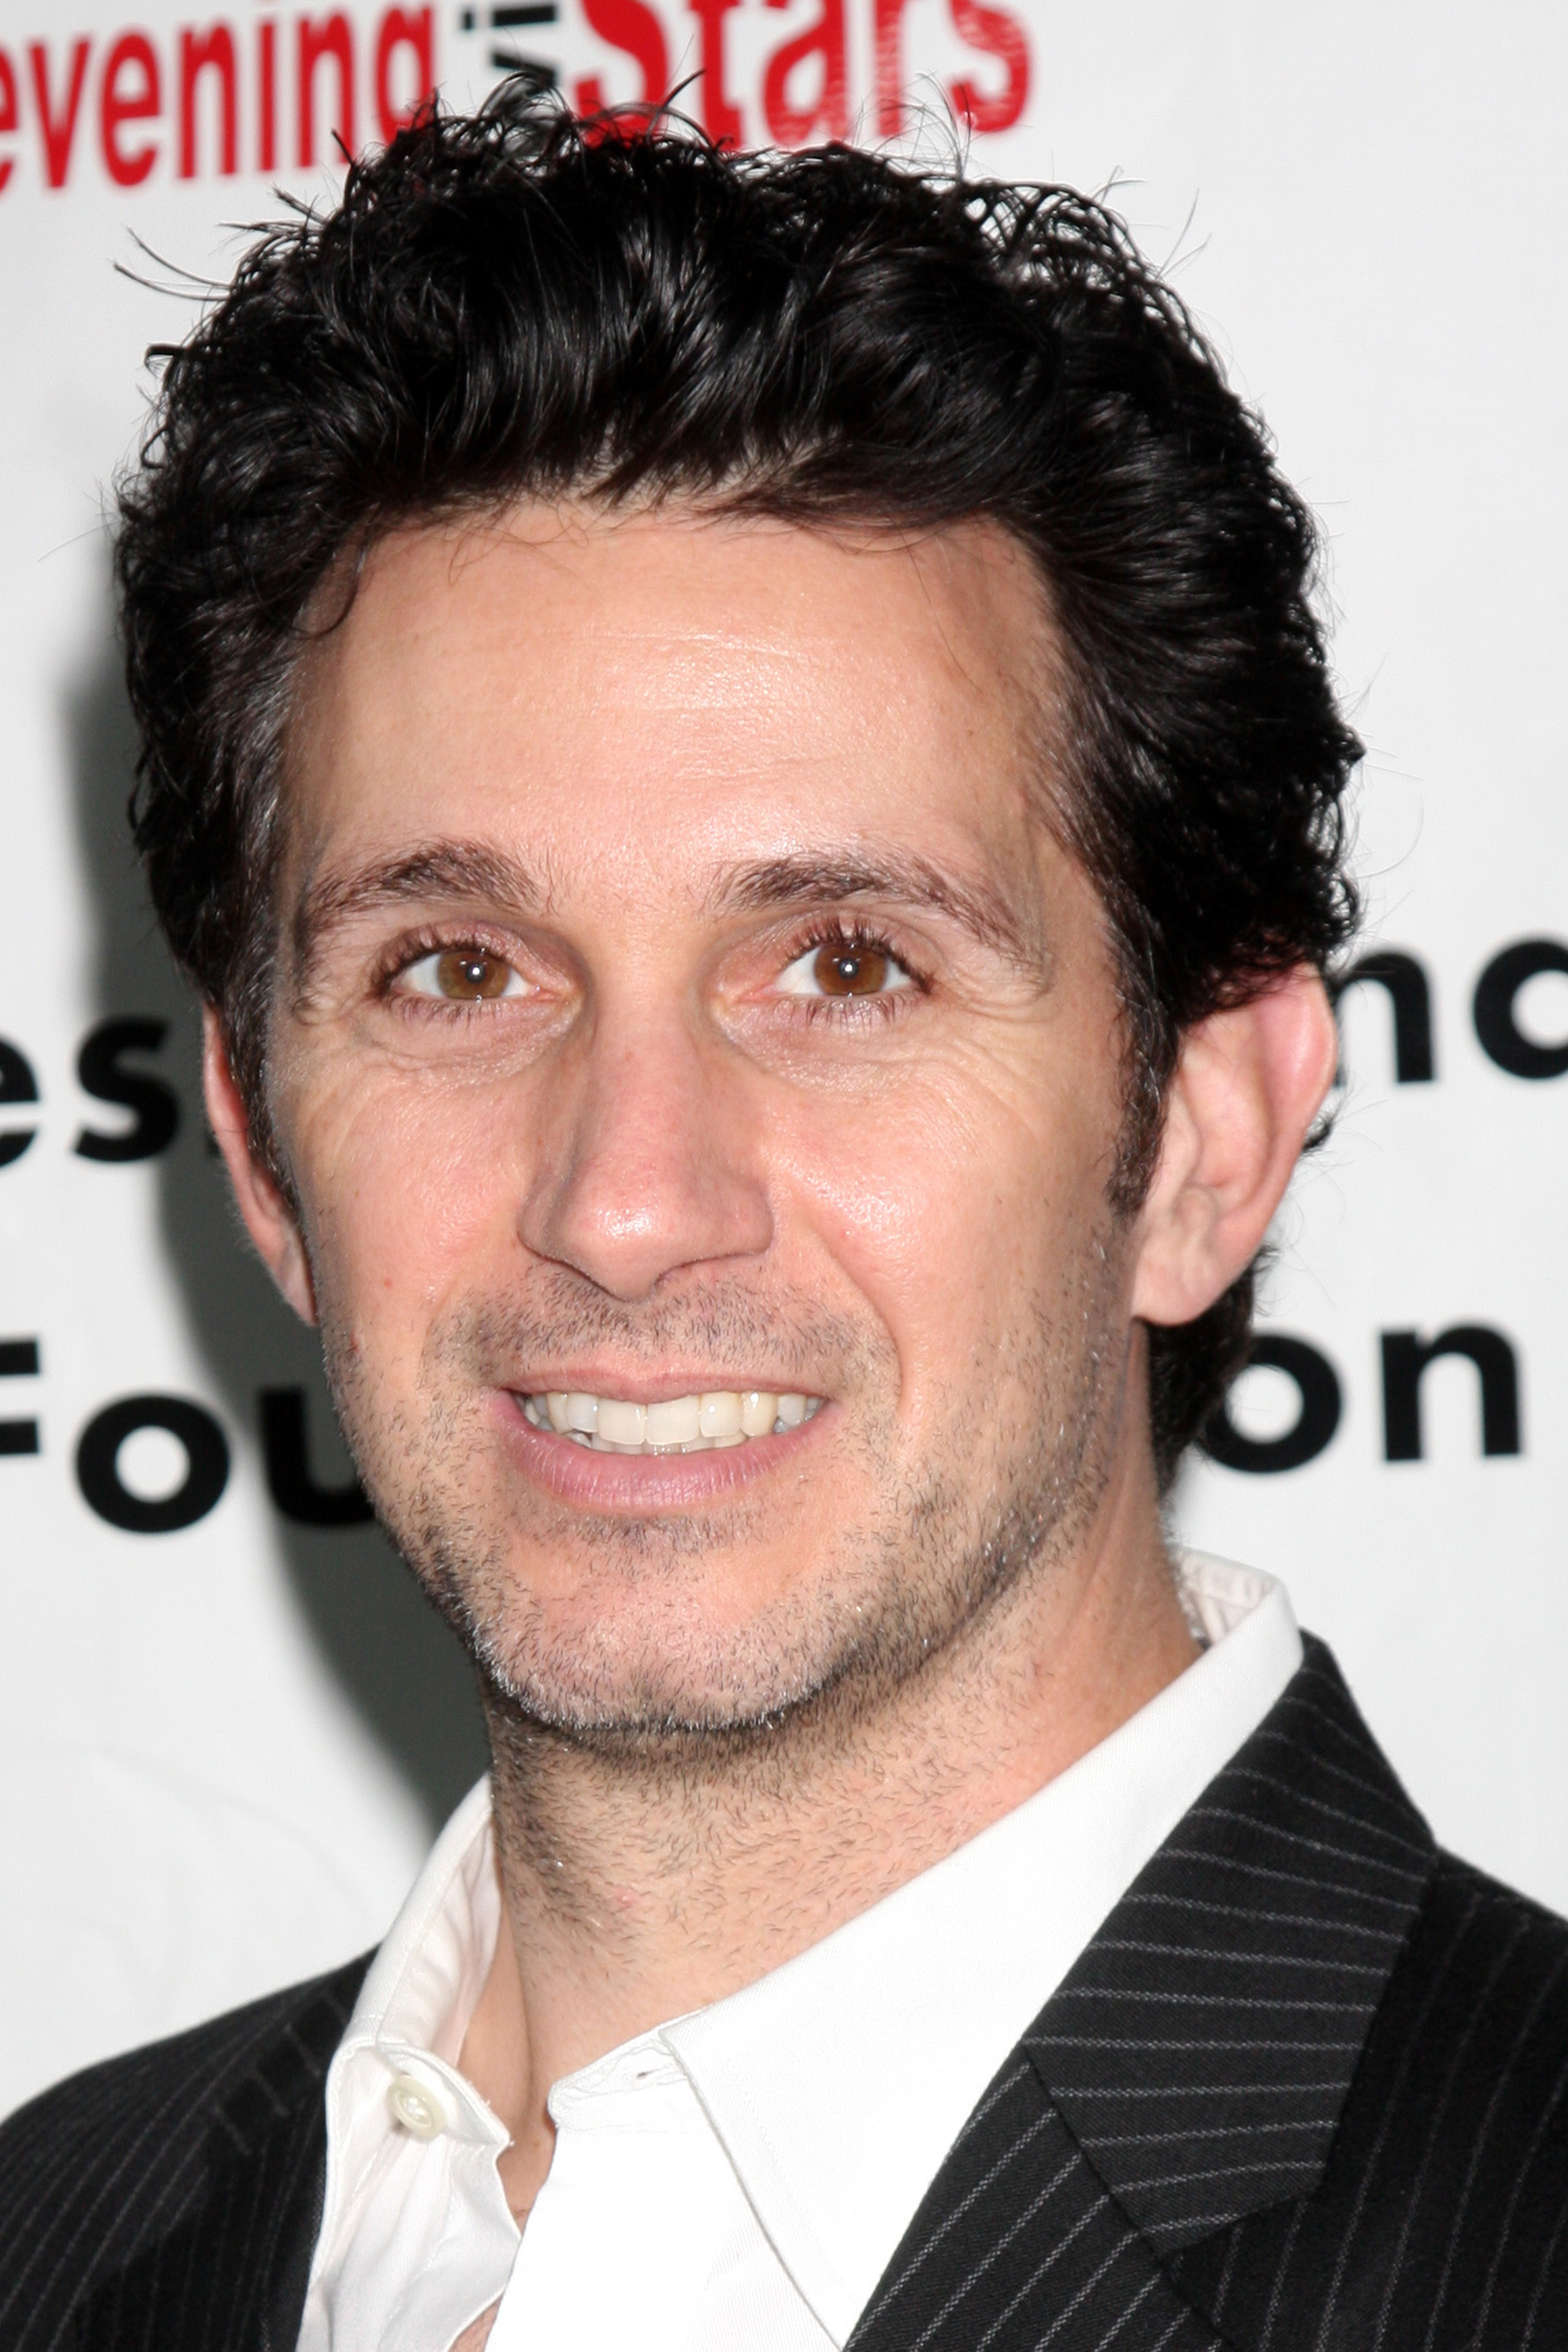 Ronnie Marmo. Editorial credit: Kathy Hutchins / Shutterstock.com